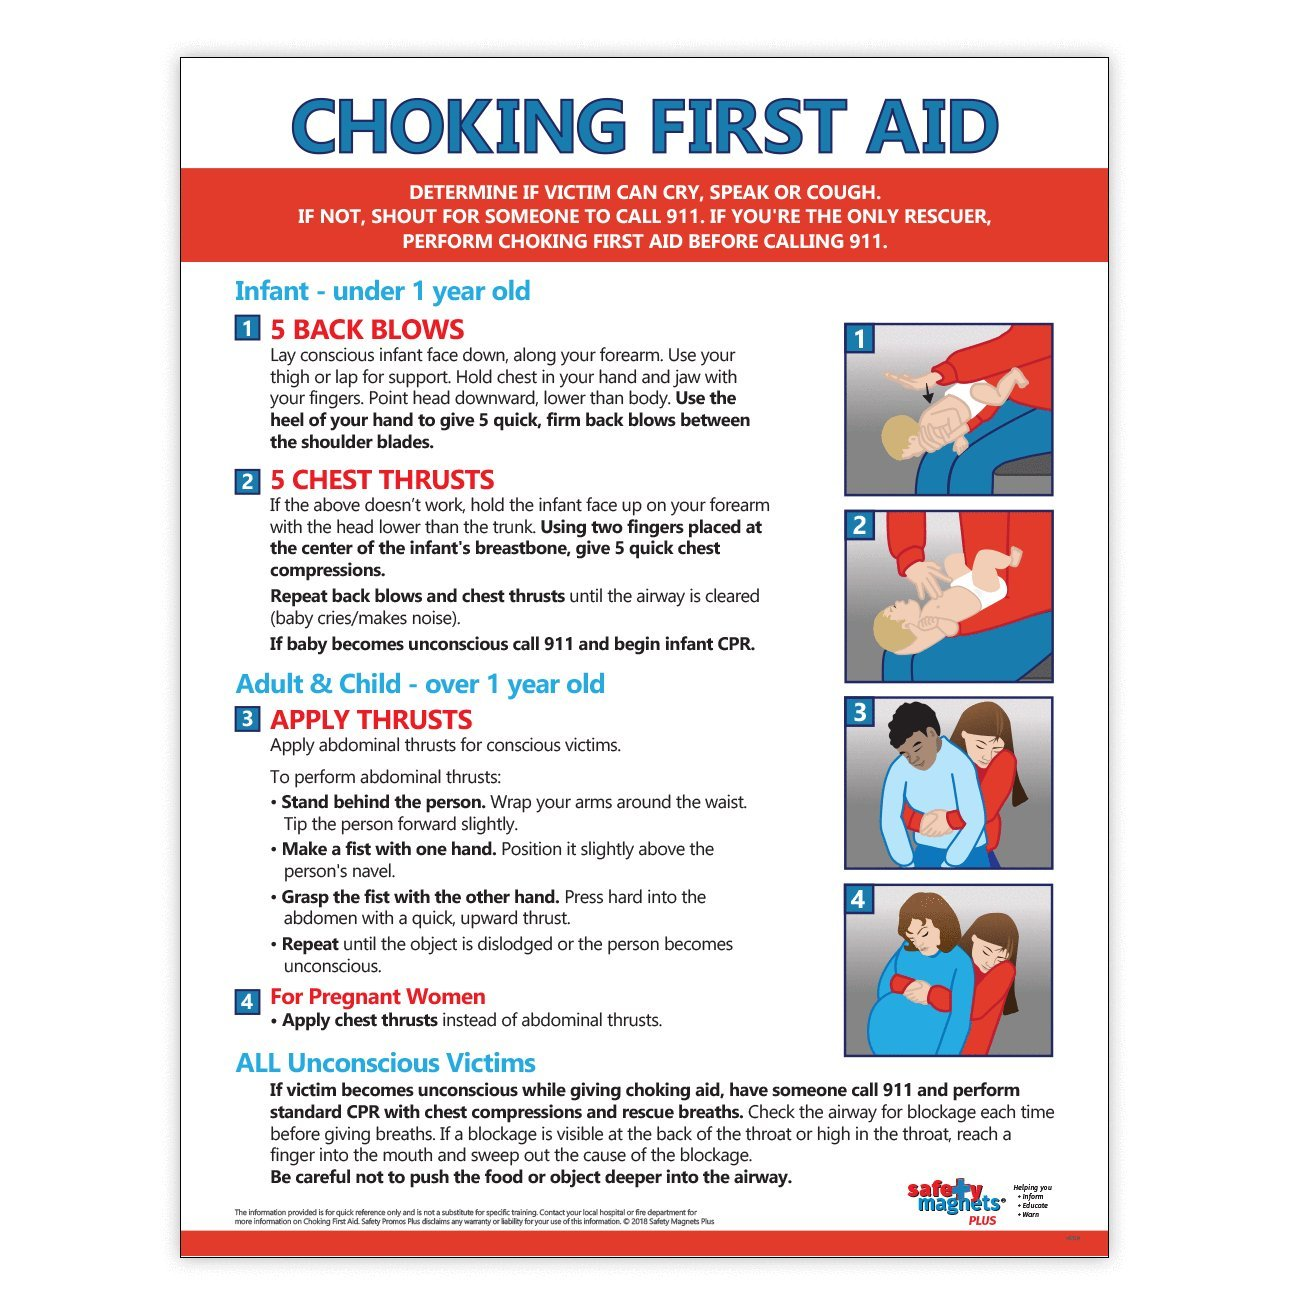 17 x 22 in Choking First Aid Poster Instructions for Infants - Laminated Children and Adults Safety Magnets